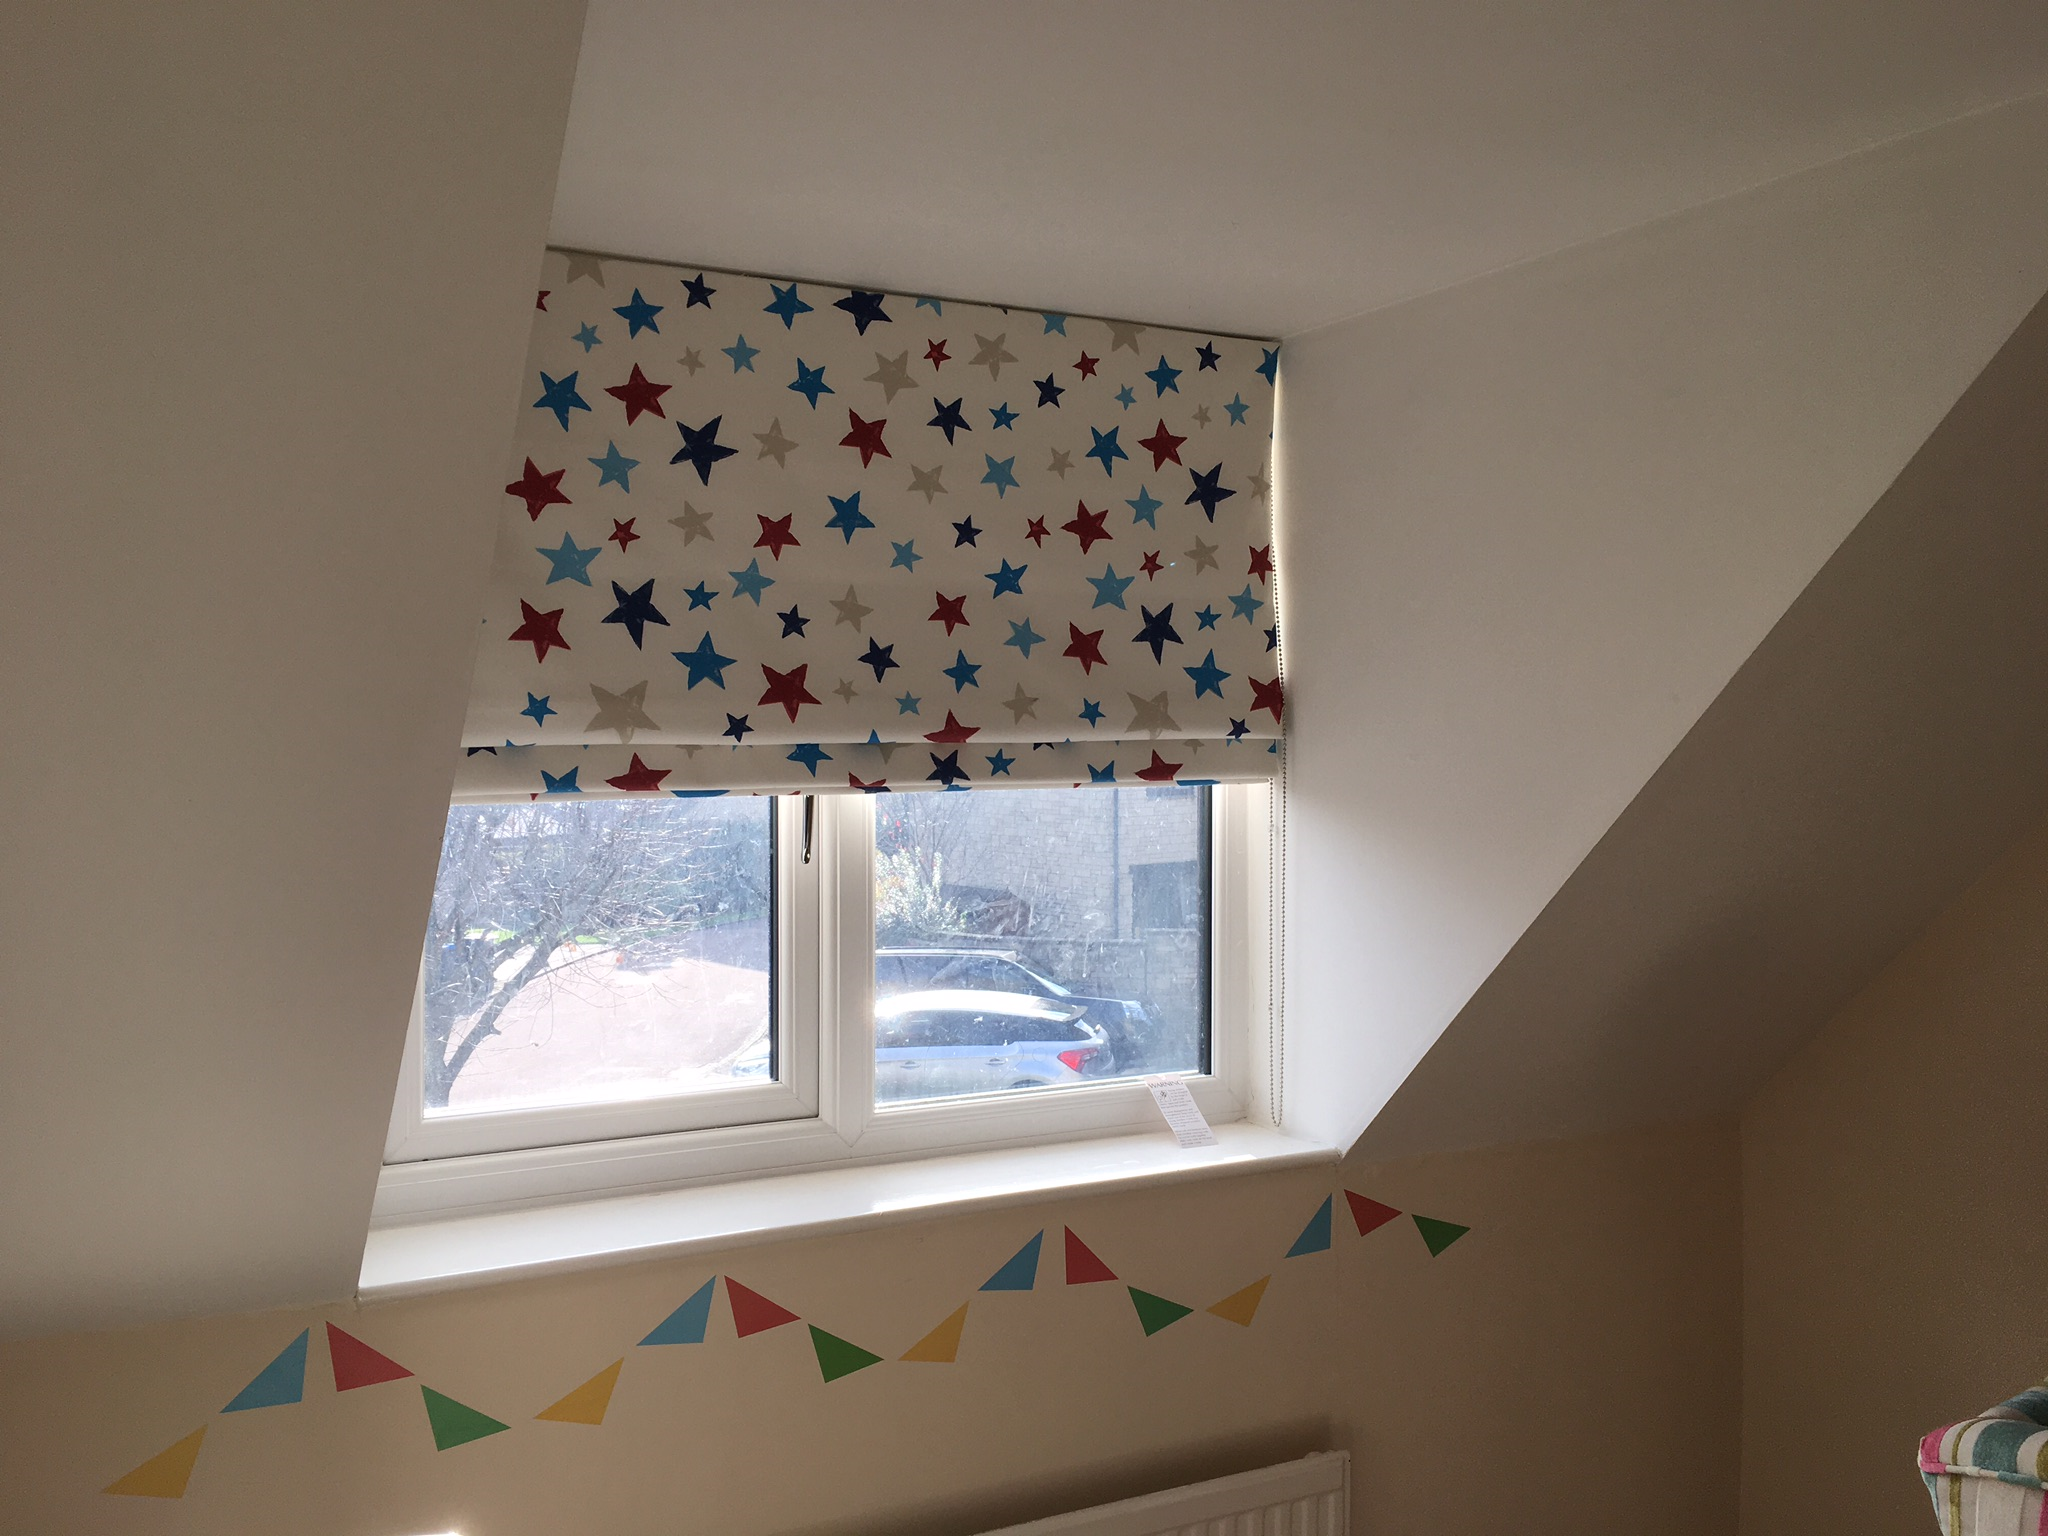 Childrens Room Roller Blind, versatile and fun!